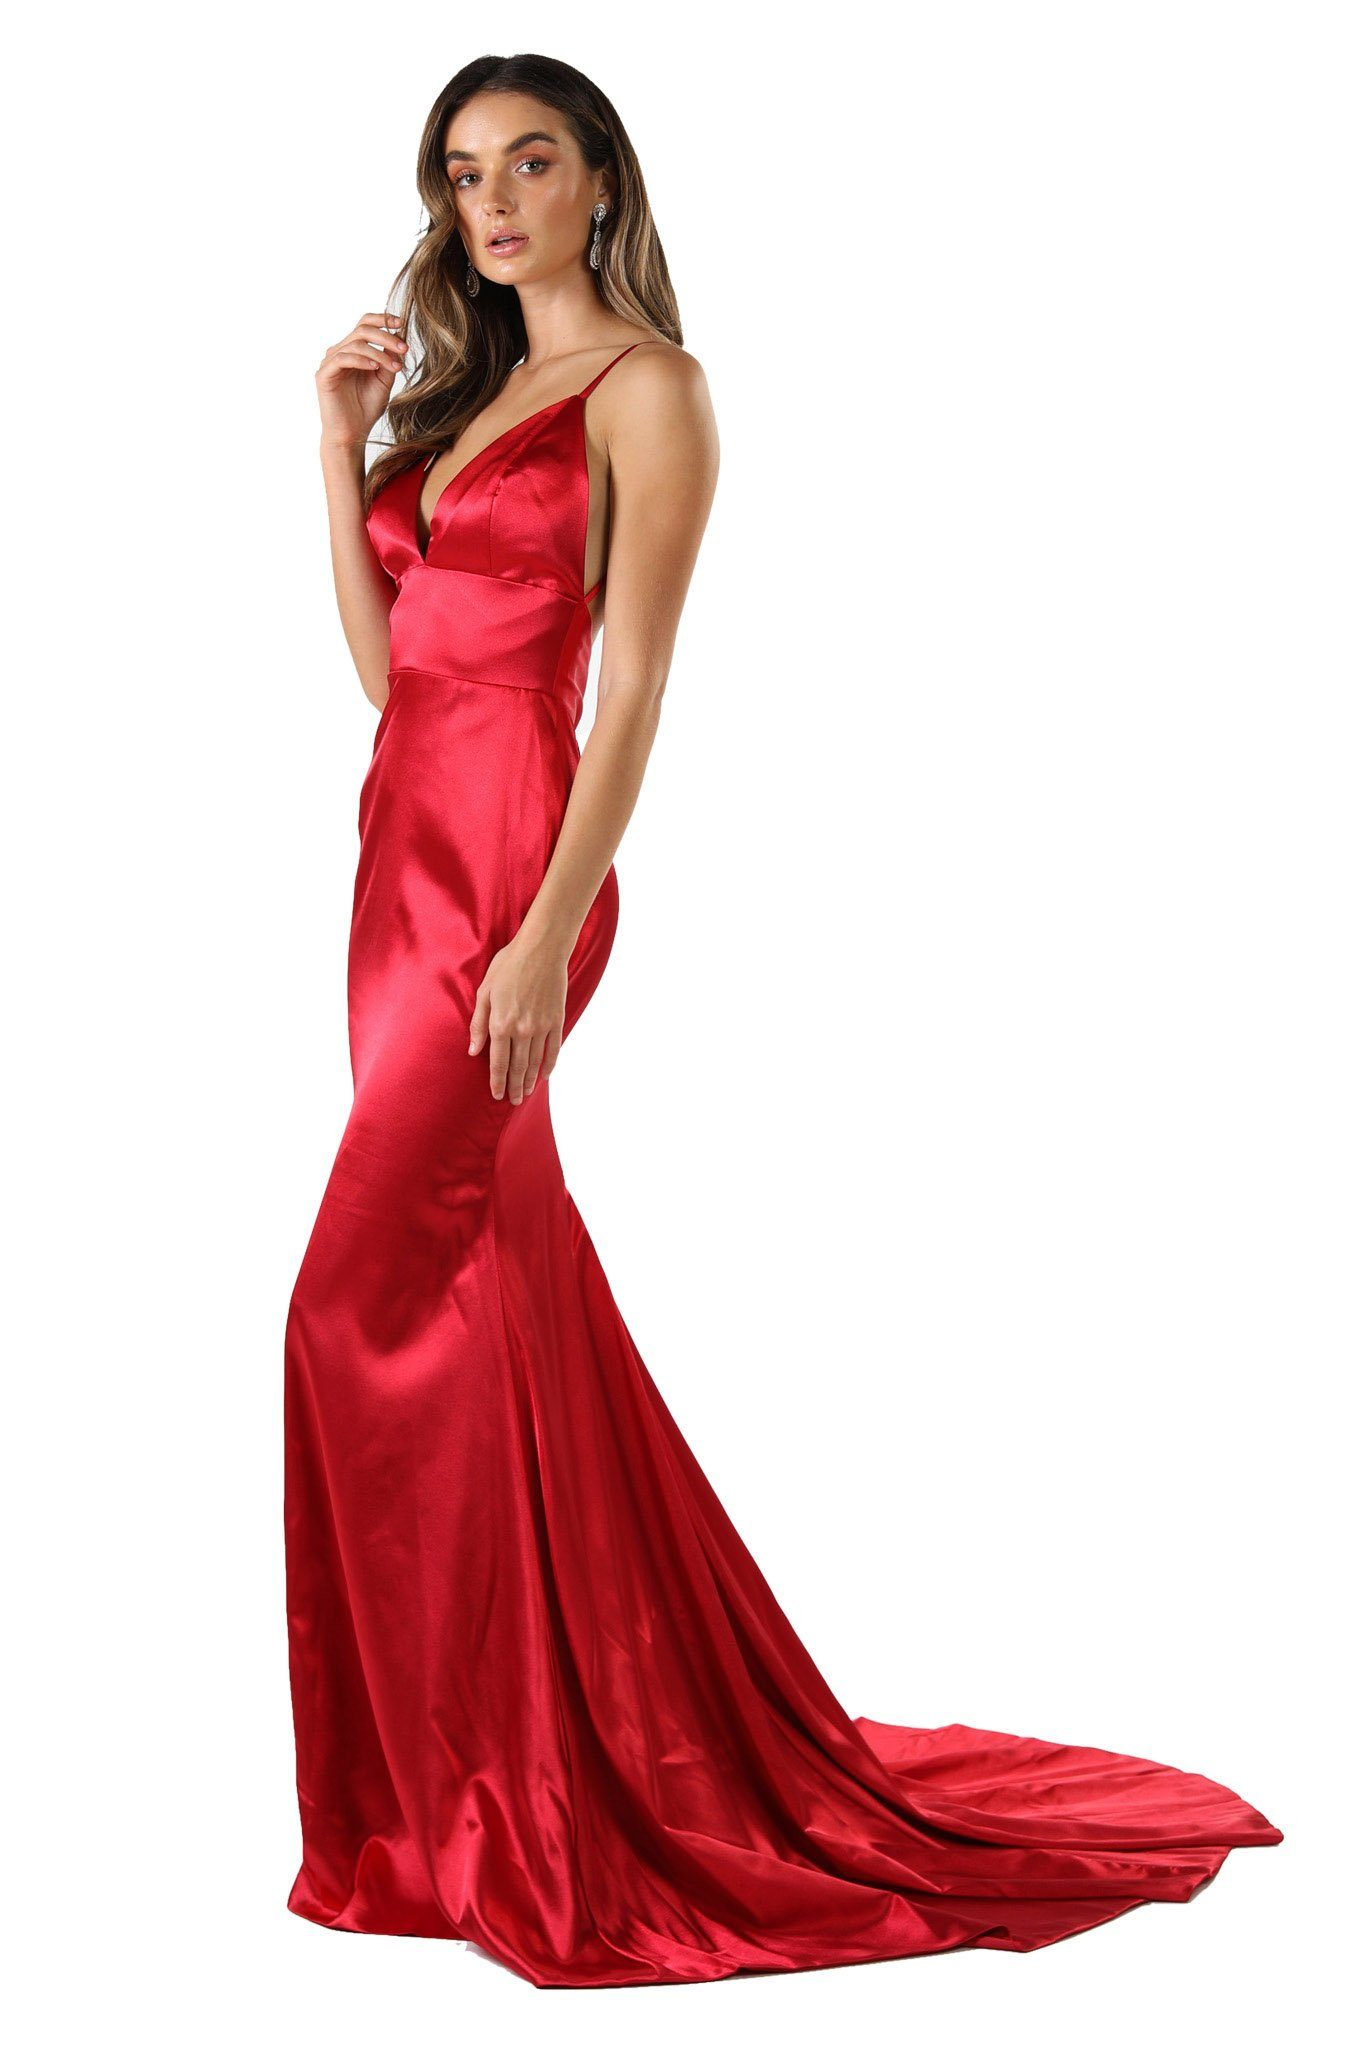 155869bdfe Bright red sleeveless satin formal long gown with thin shoulder straps